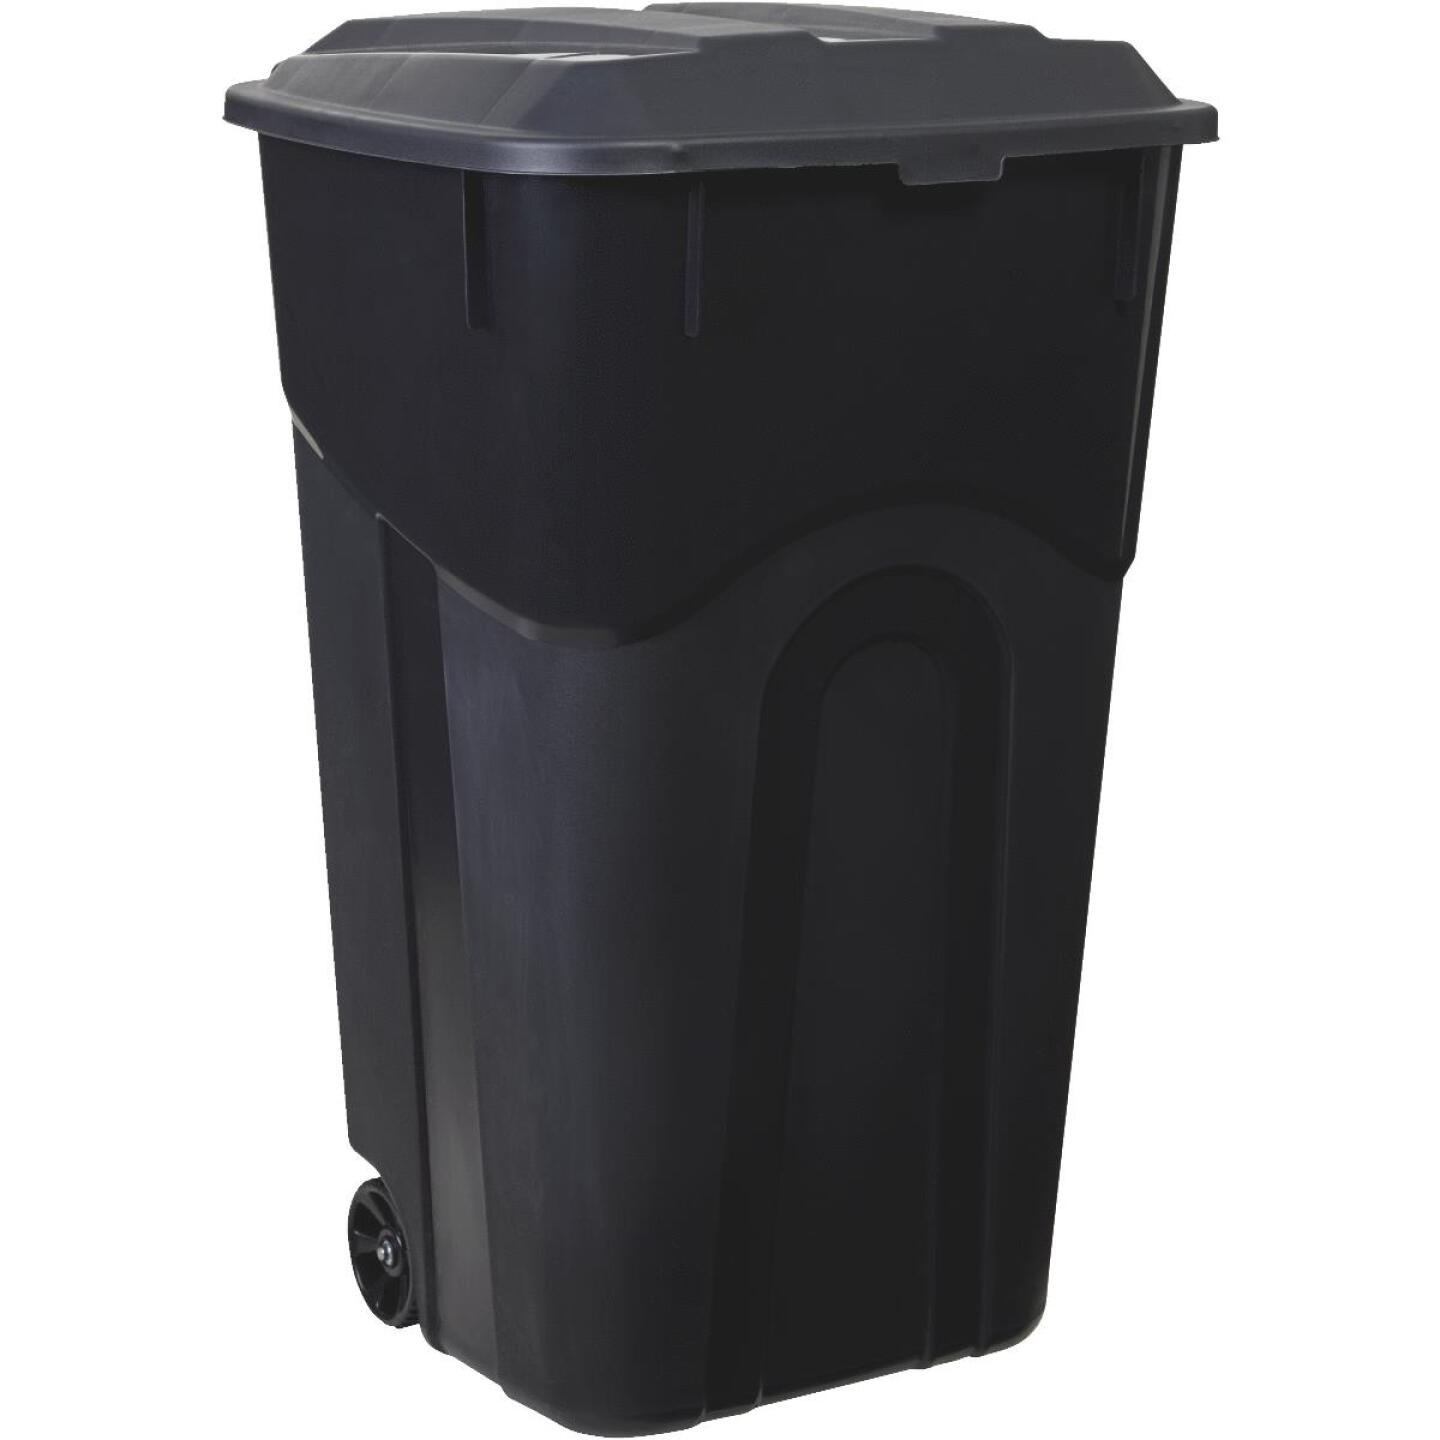 United Solutions Rough and Rugged 32 Gal. Outdoor Trash Can with Attached Lid Image 4